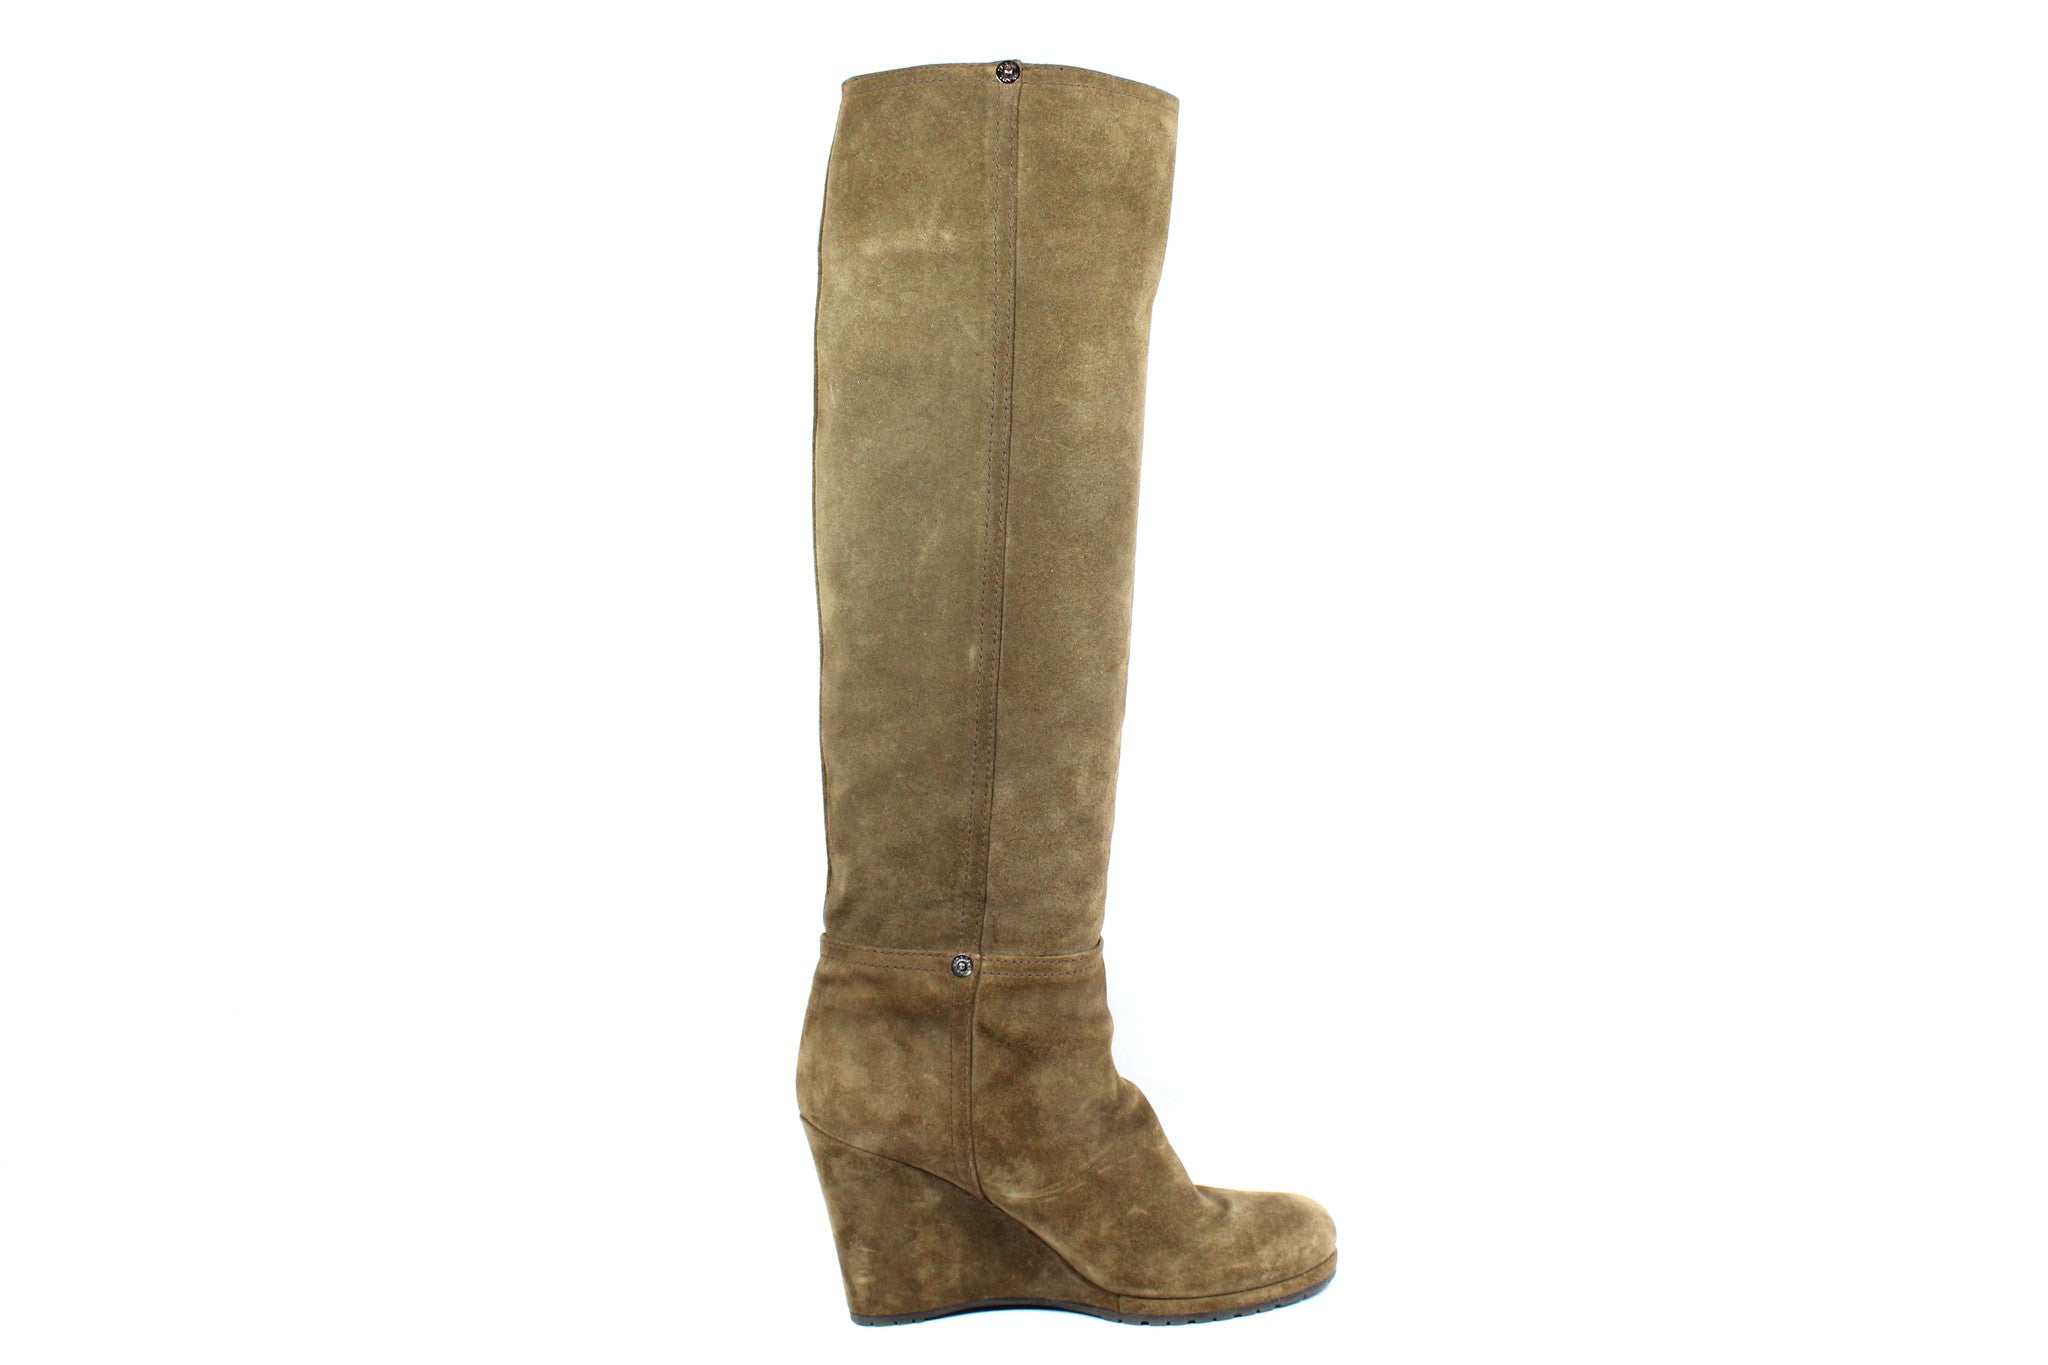 Prada Suede Taupe Wedge Boots (Size 38) - Encore Consignment - 4